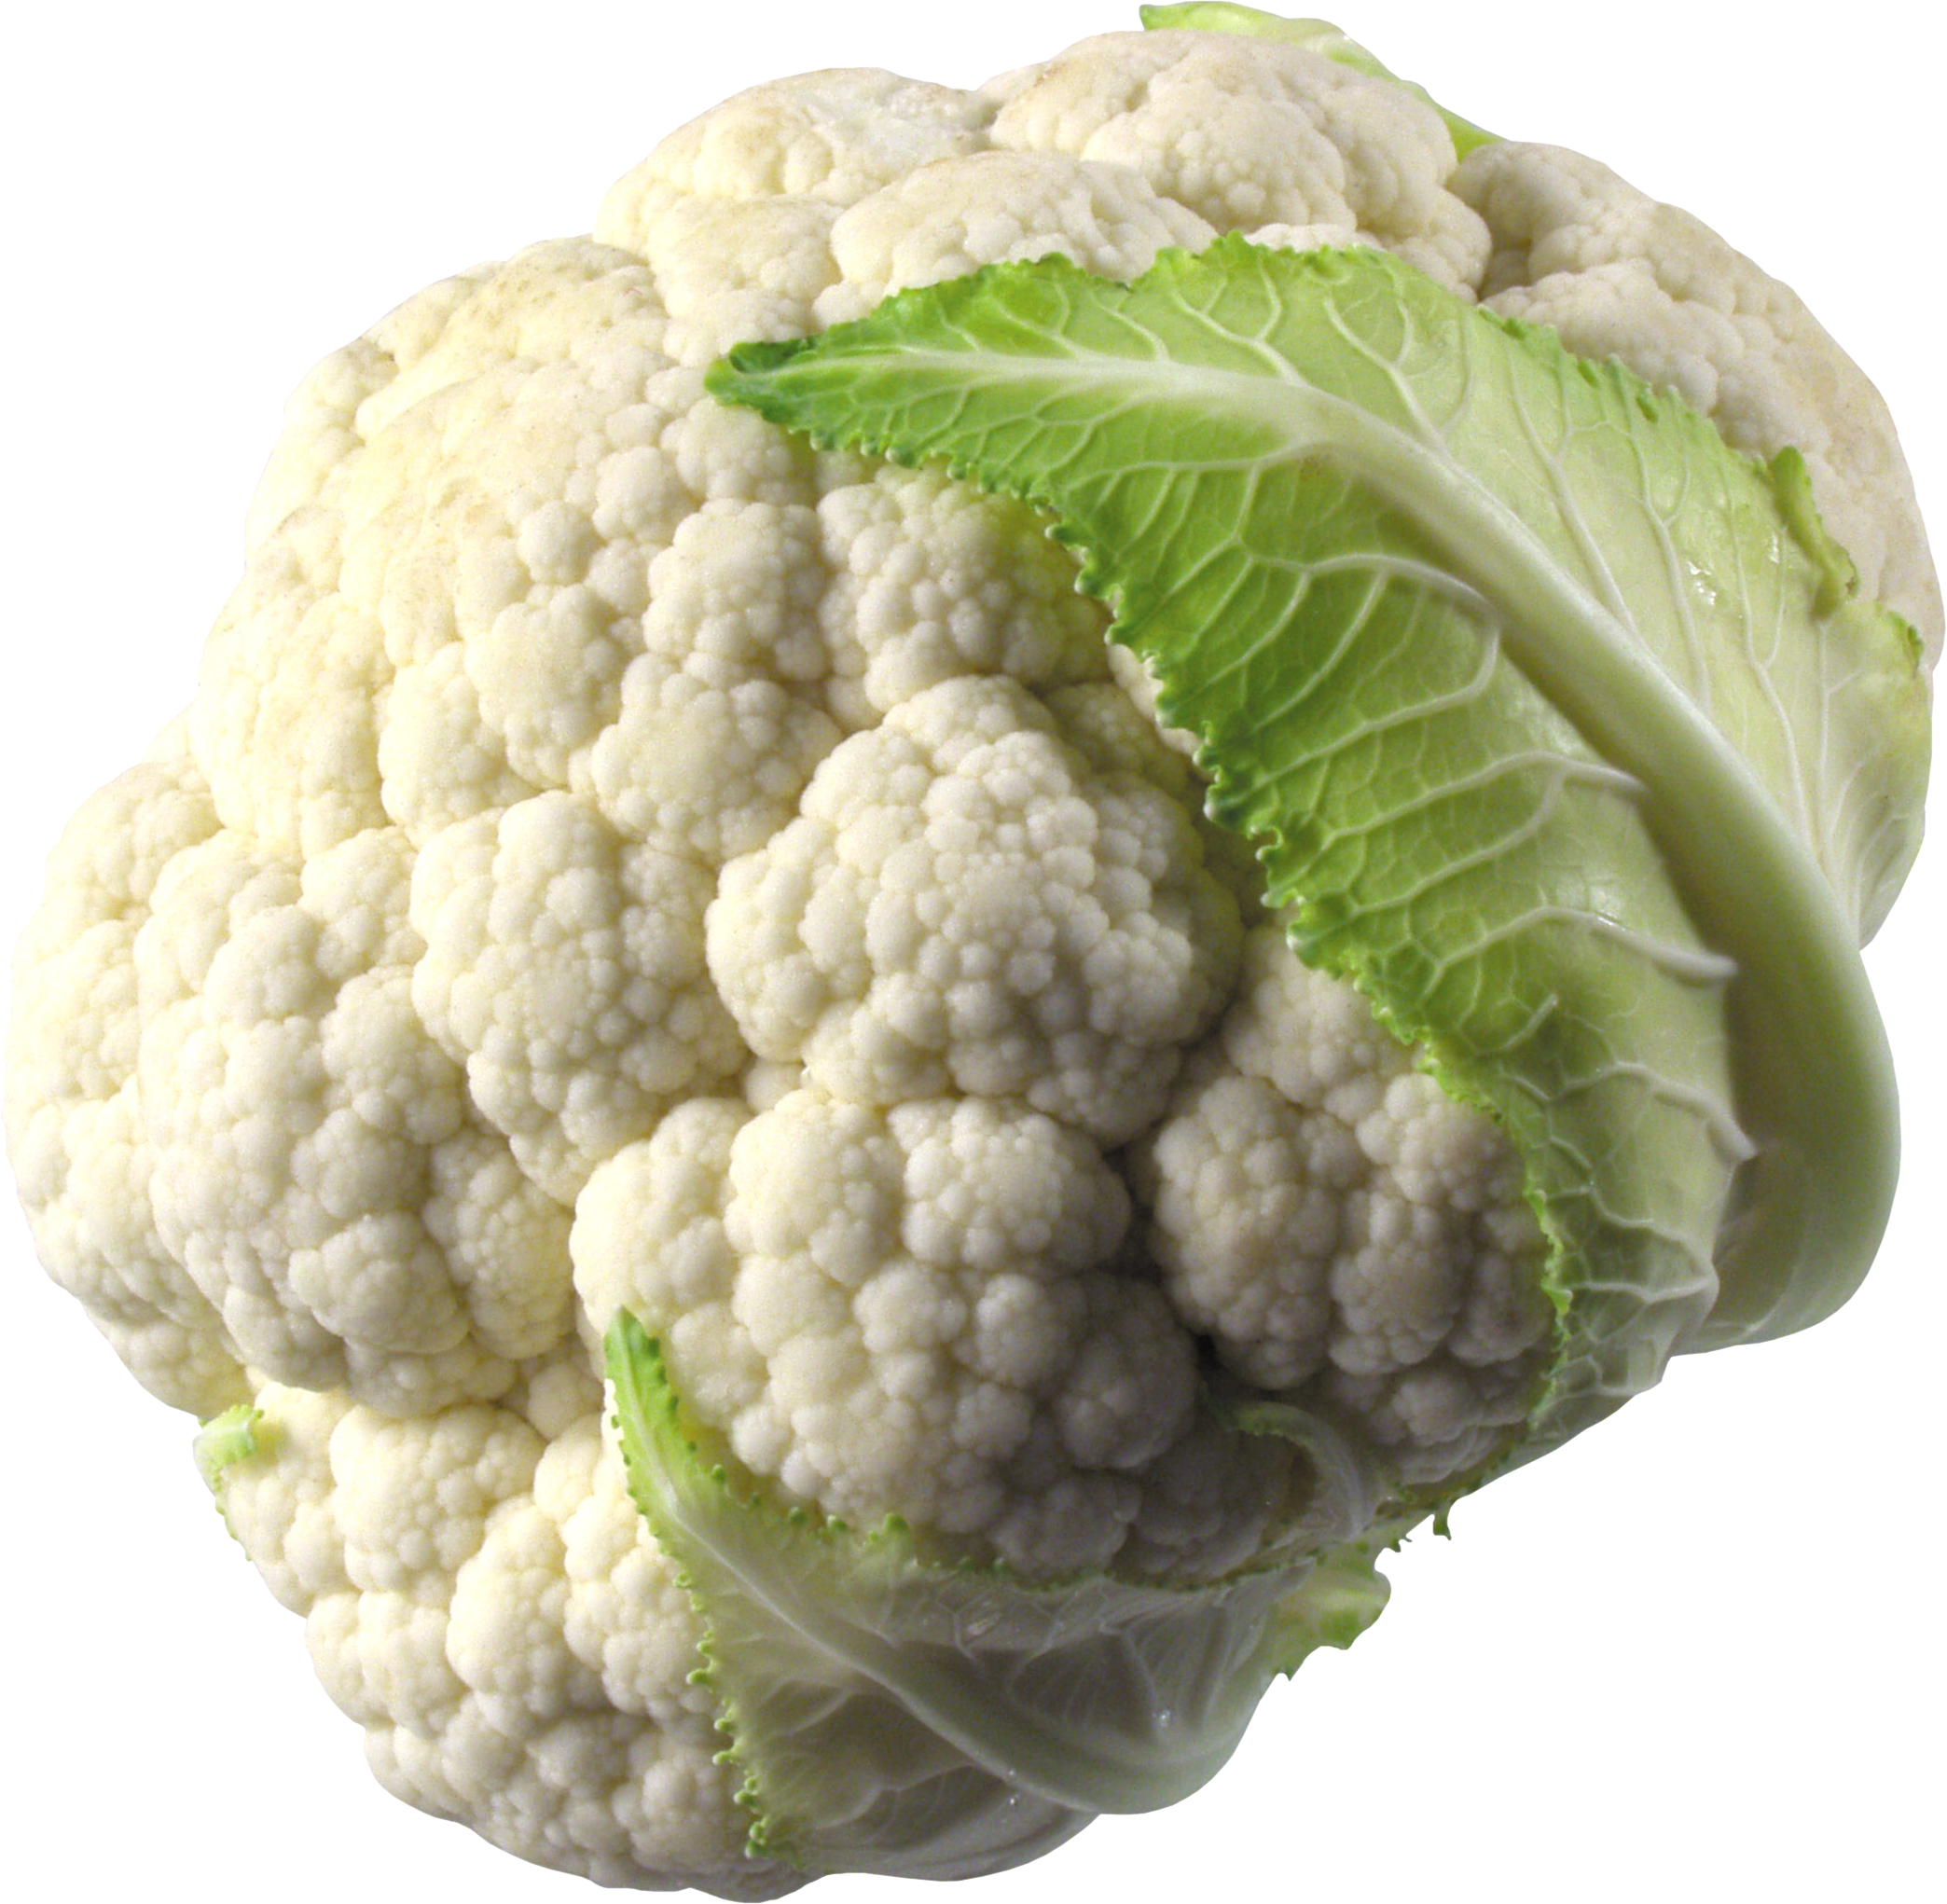 Cabbage clipart cauliflower. Png image free download